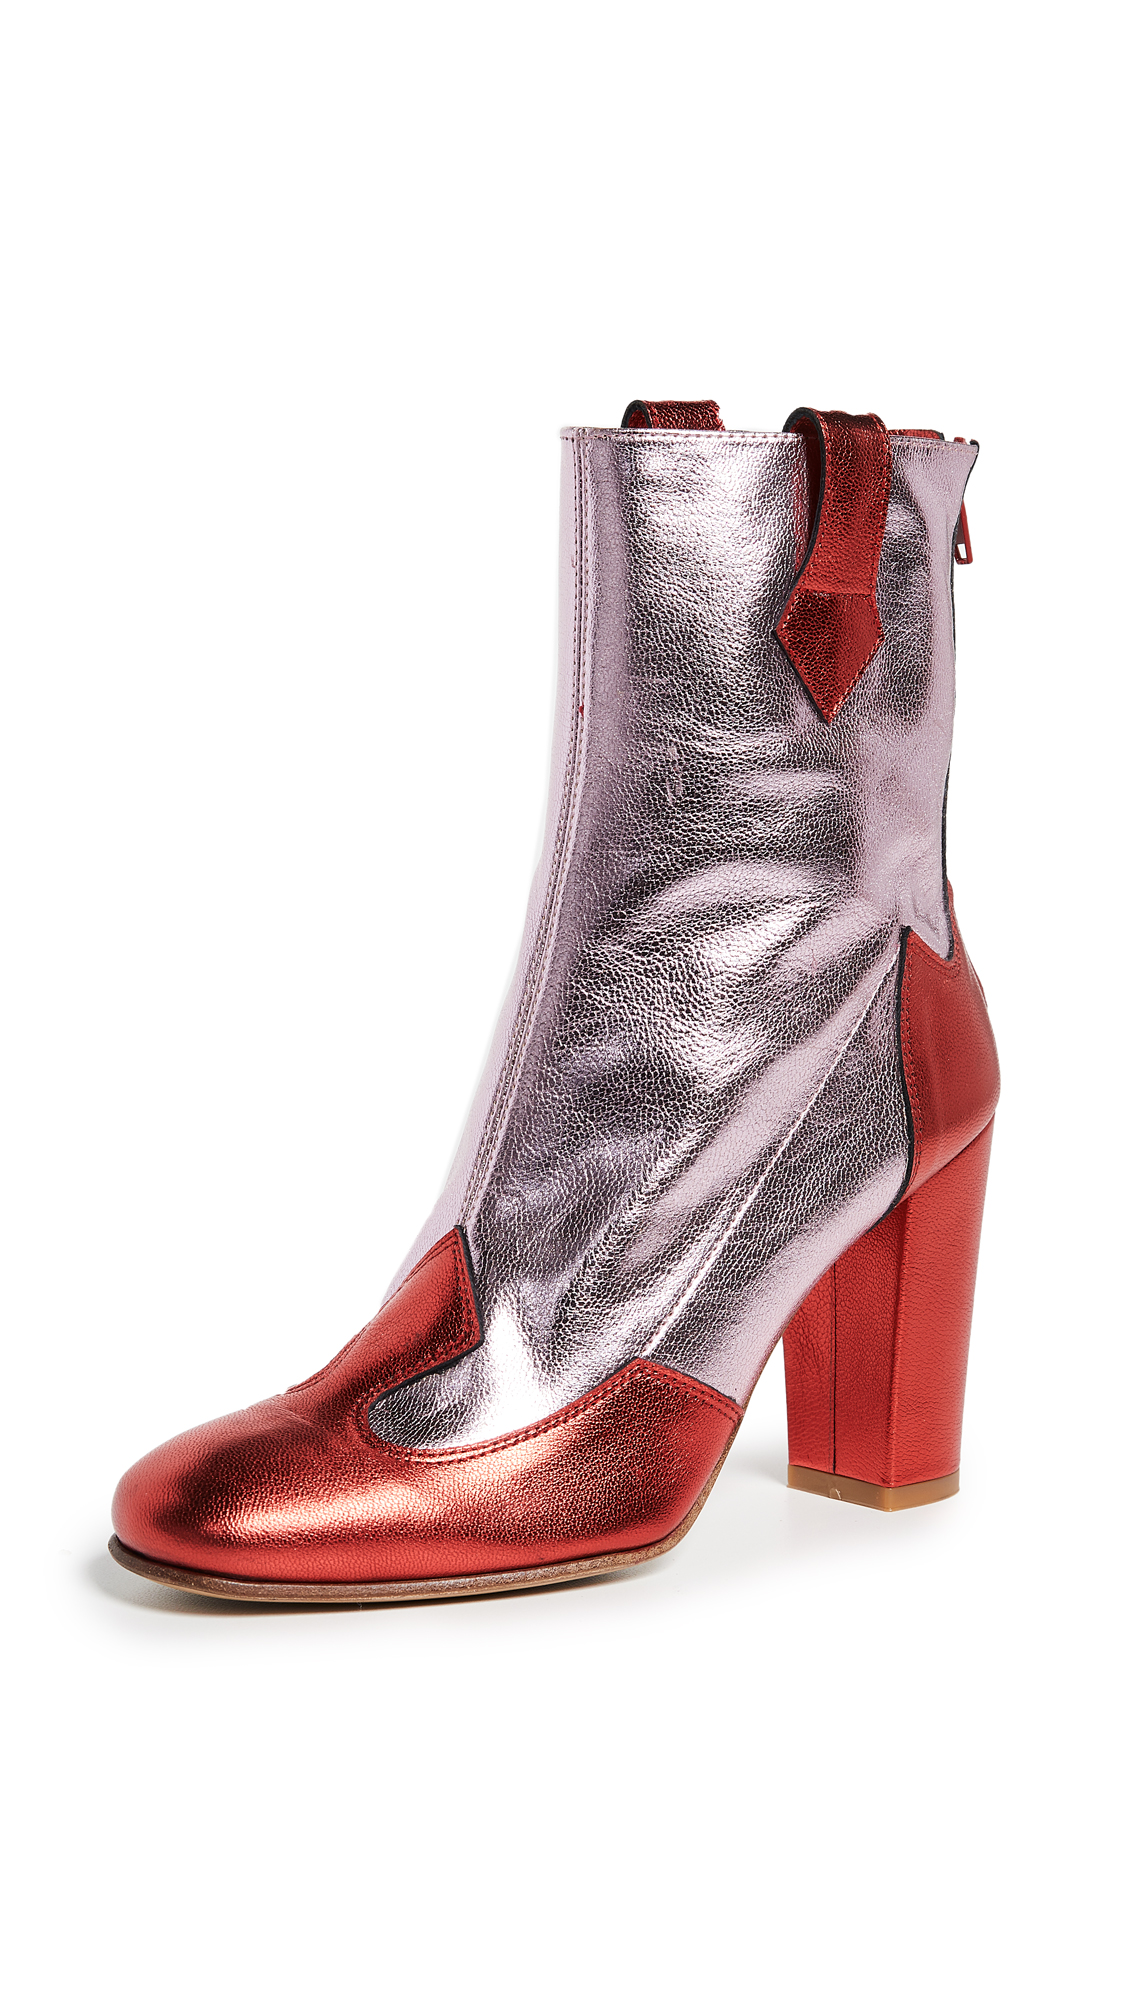 Kalda Lou Boots - Pink/Red